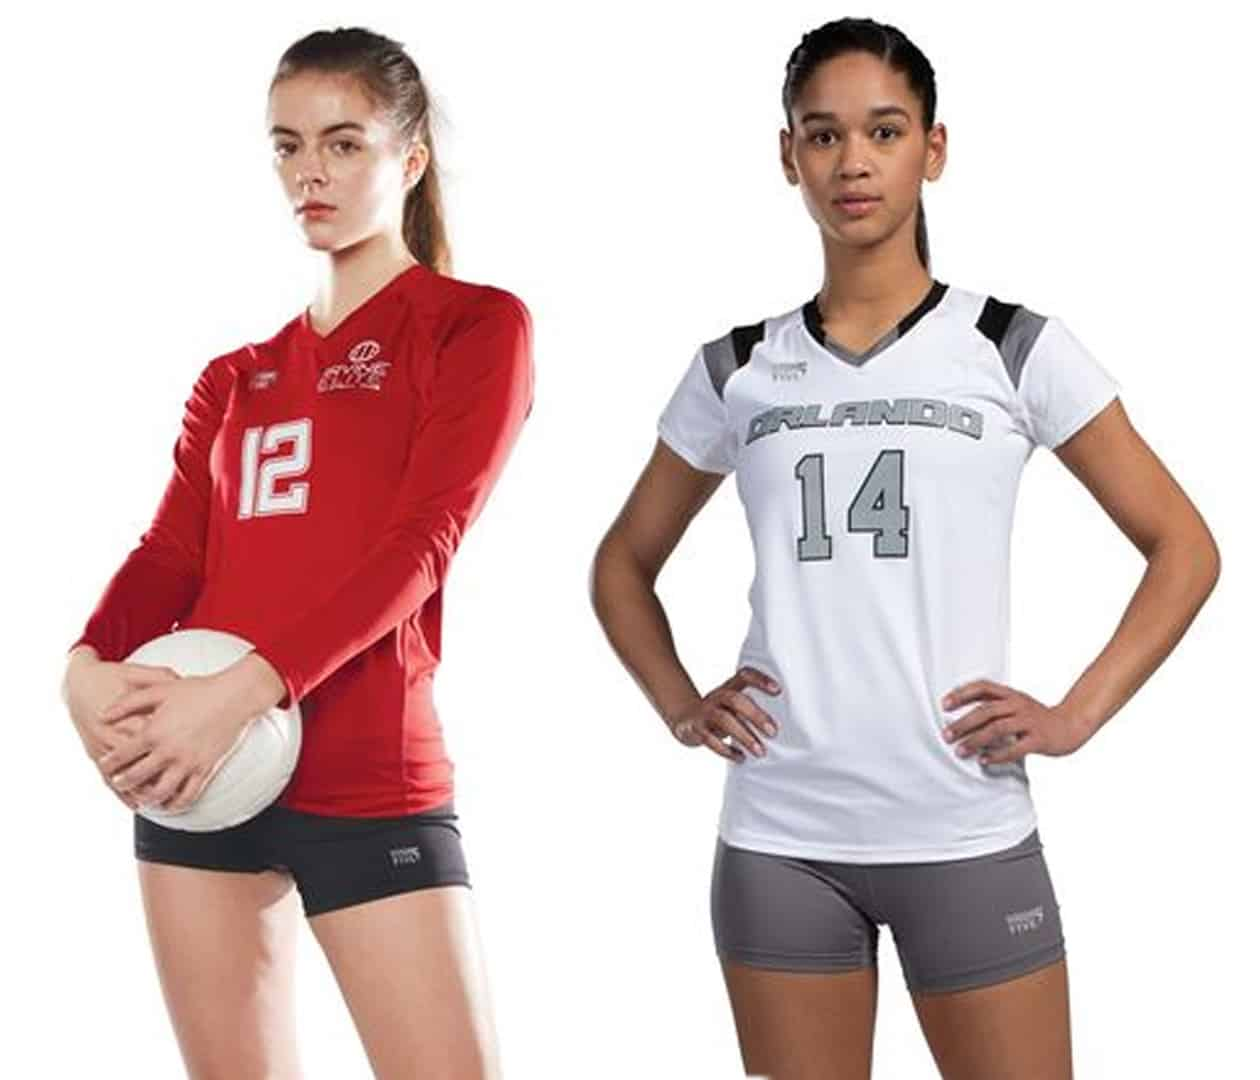 Photo of the volleyball players